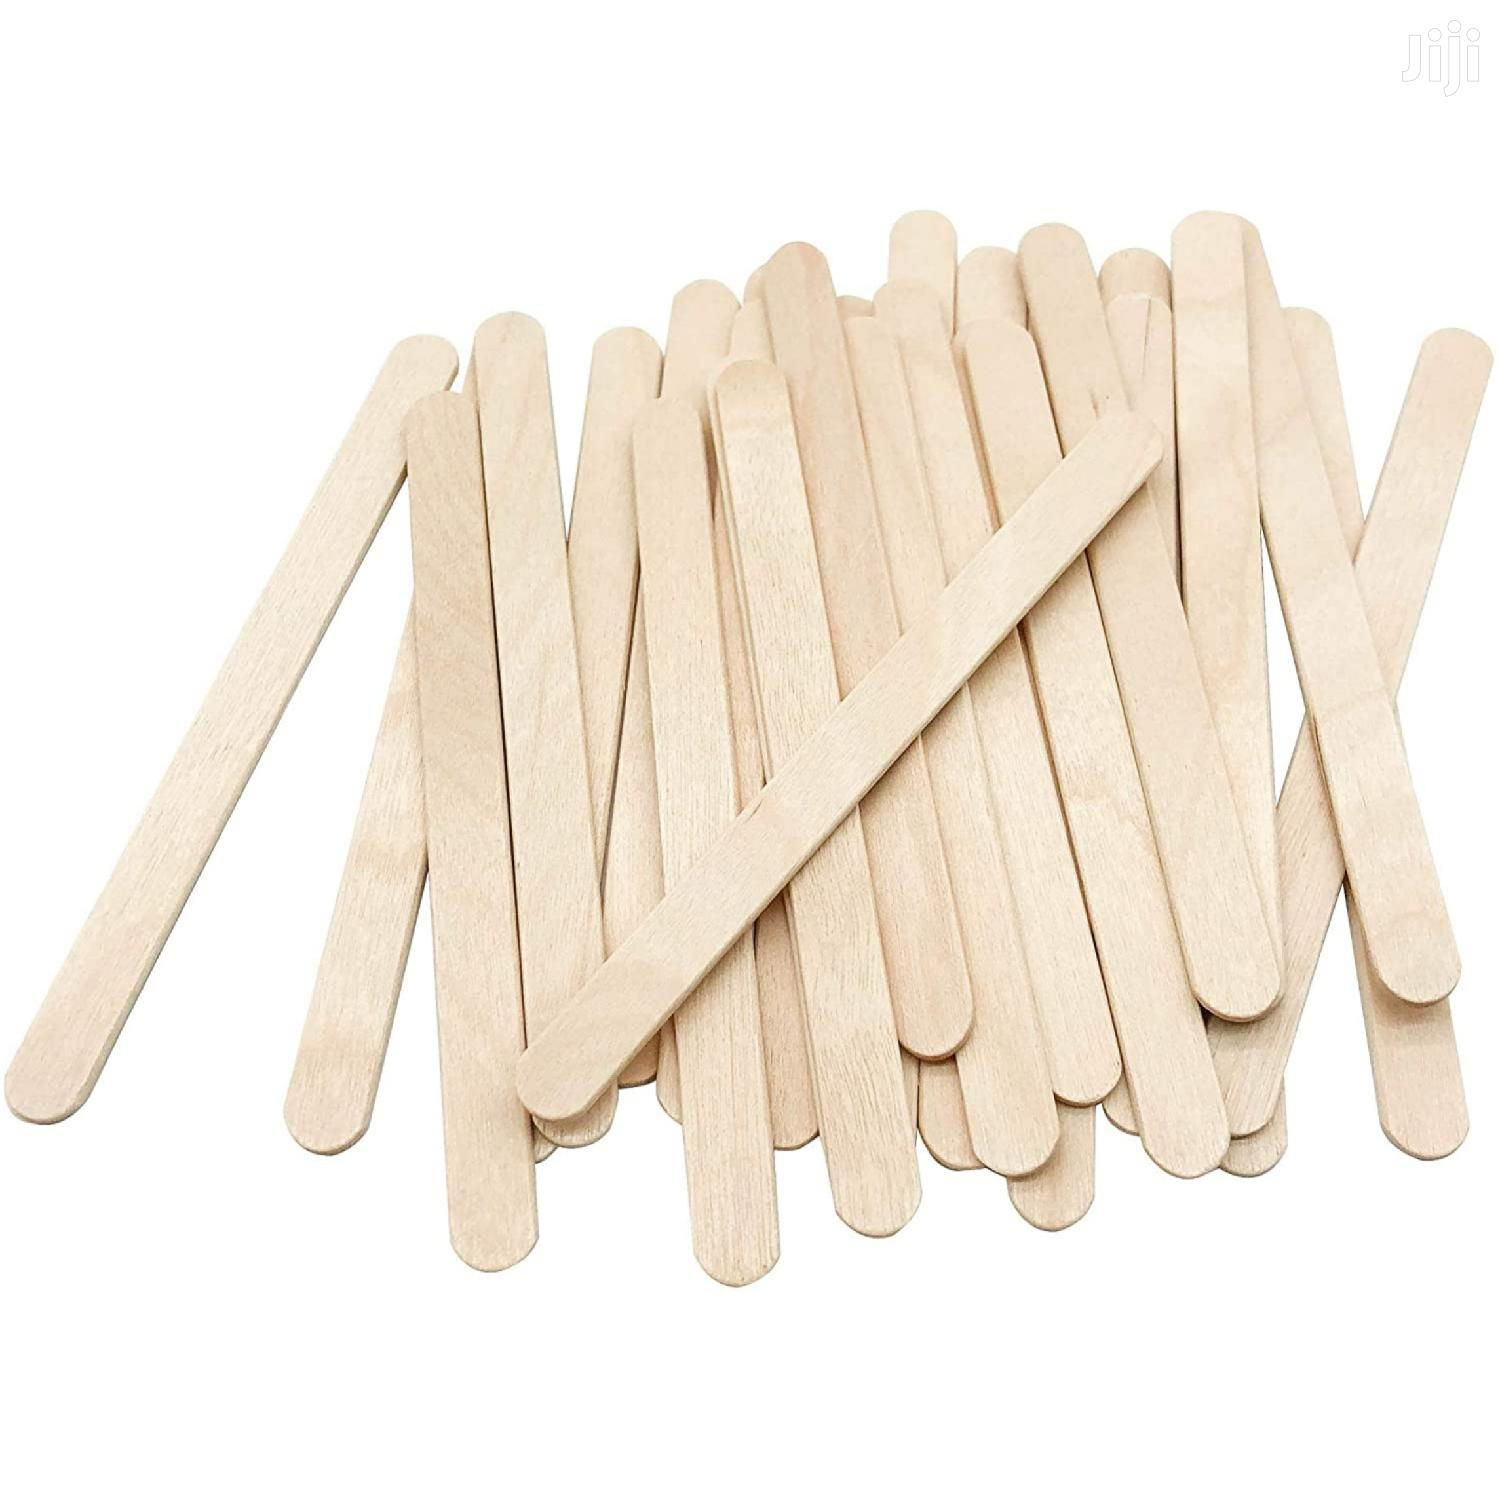 Popsicle Sticks   Restaurant & Catering Equipment for sale in Accra Metropolitan, Greater Accra, Ghana